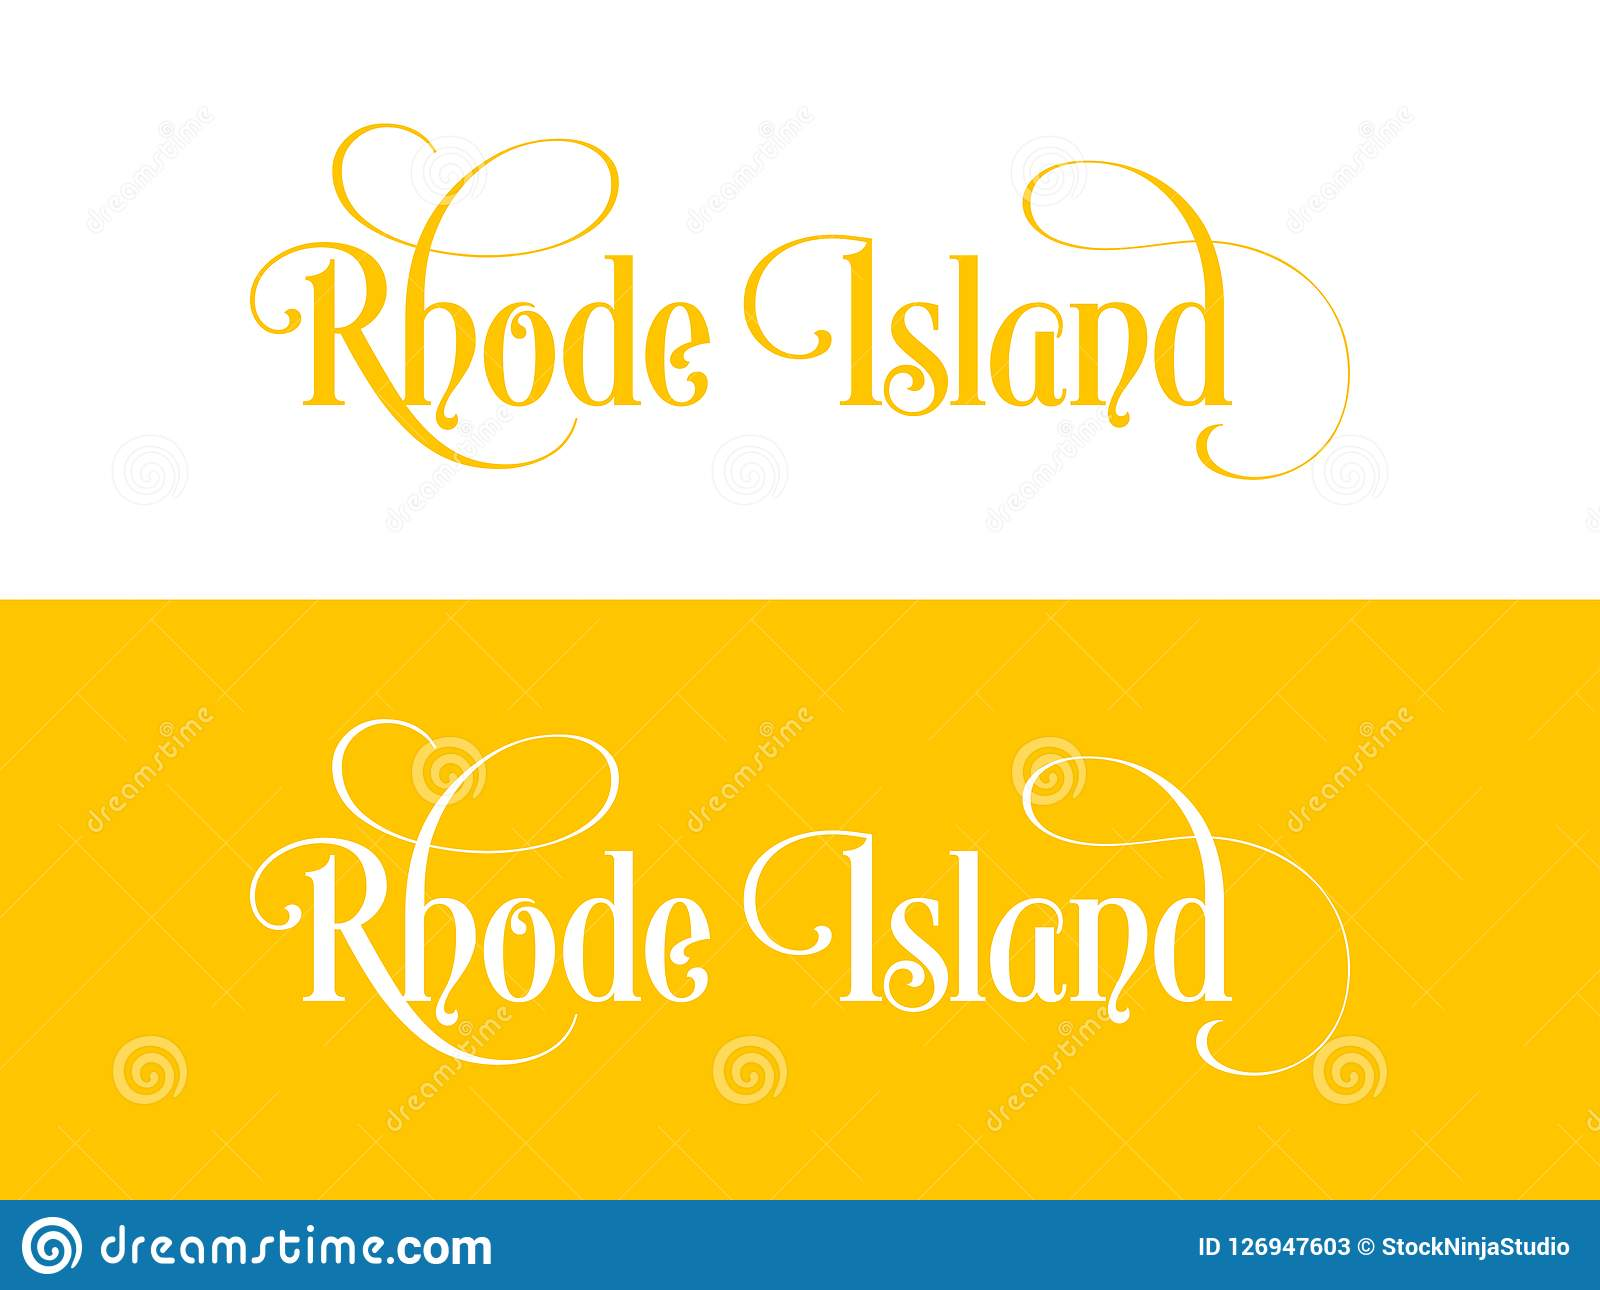 Typography of The USA Rhode Island States Handwritten Illustration on Official U.S. State Colors. Modern Calligraphy Element for your design. Simple vector Vector Illustration